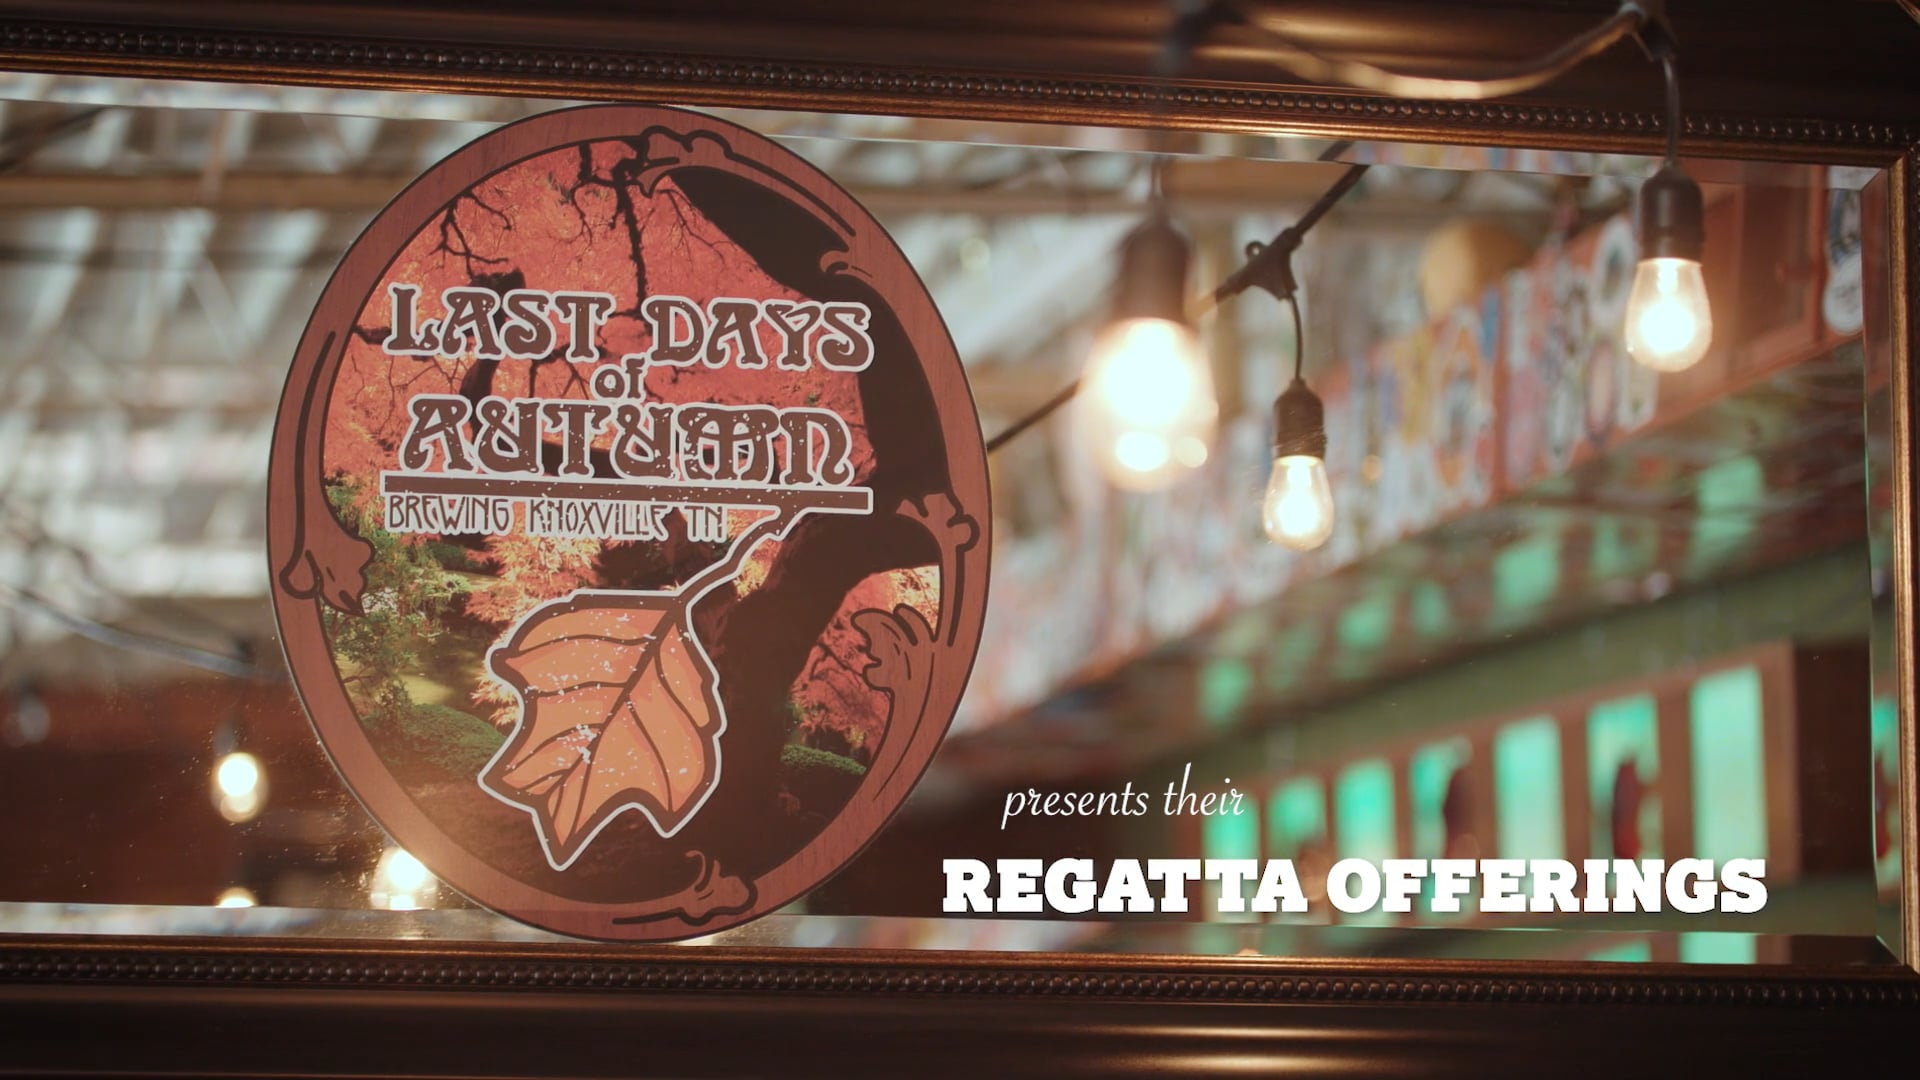 Clinch River Regatta, Beer, and Food Festival - Last Days of Autumn's Food Offerings